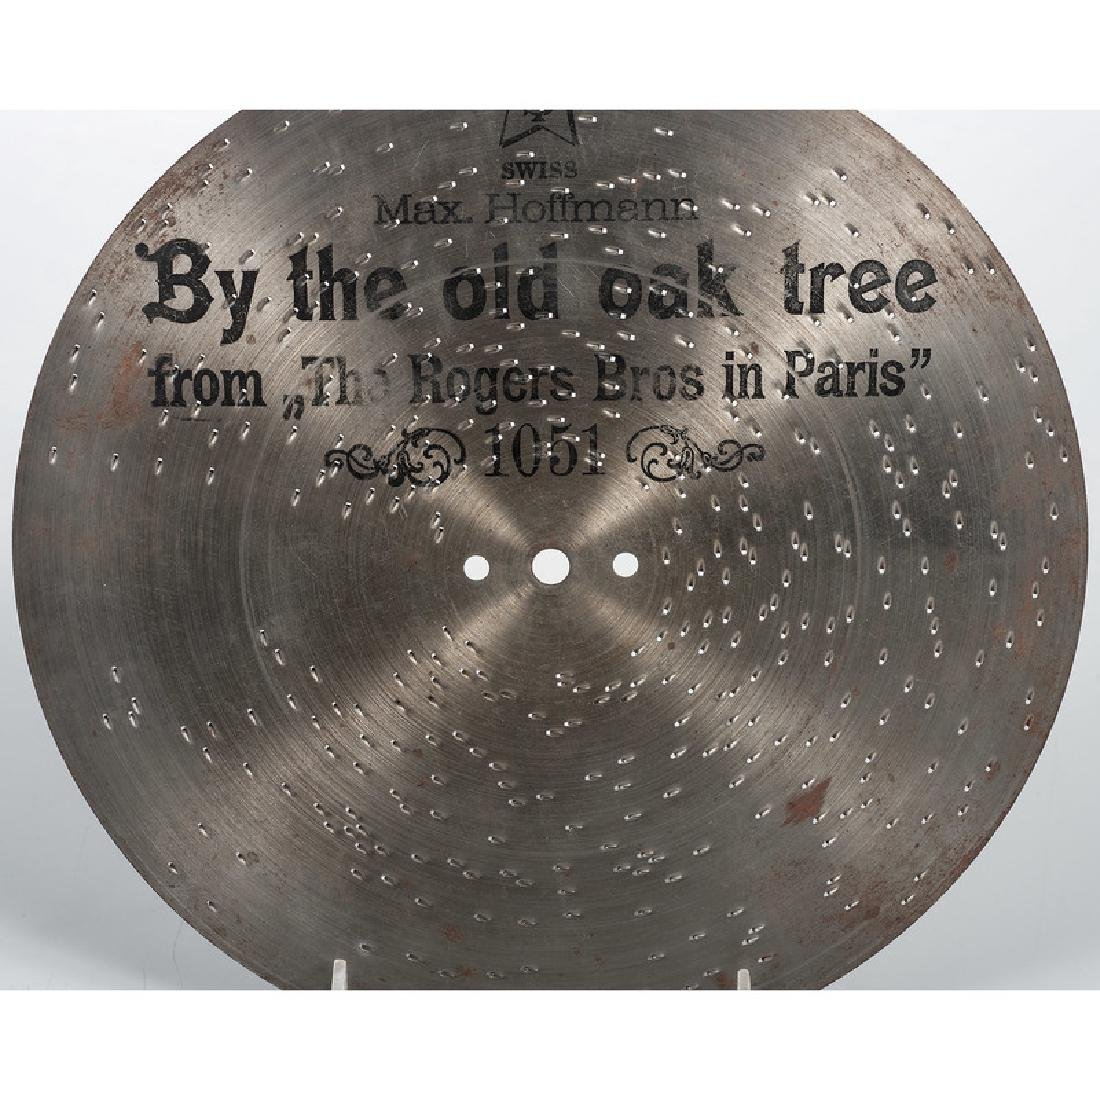 Group of 9.25-Inch Music Box Discs